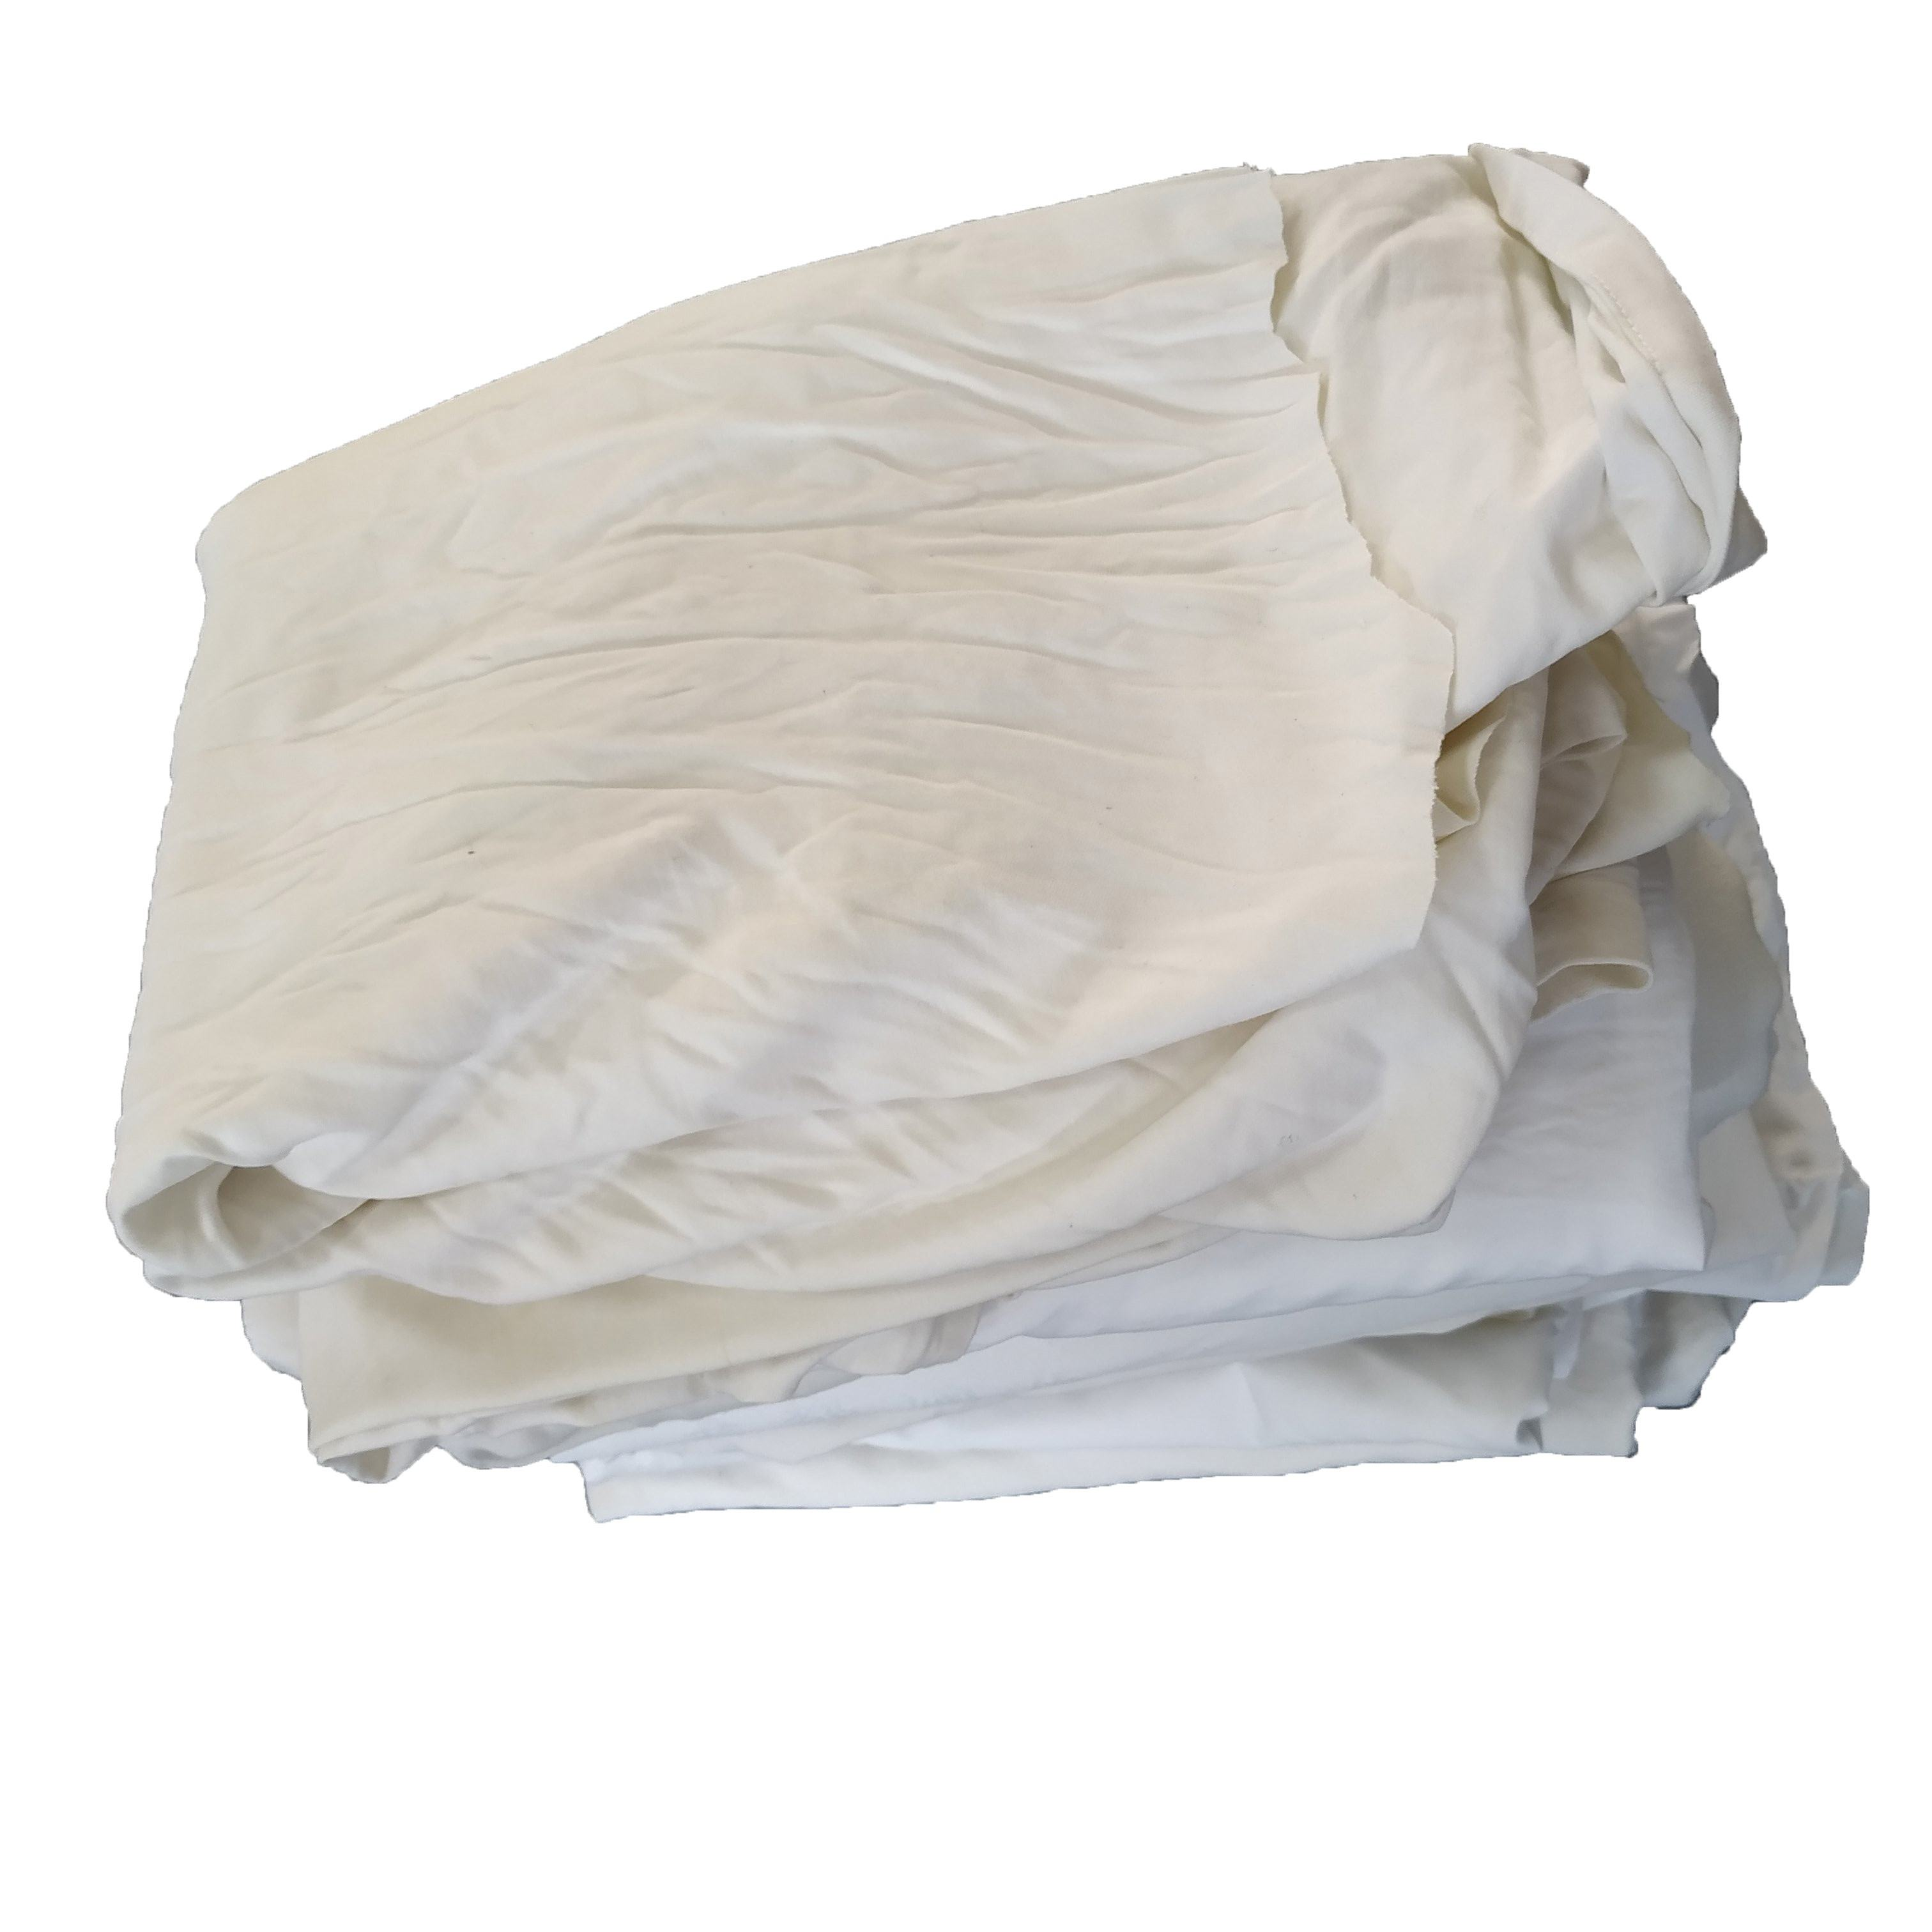 High quality hotel second-hand white bed sheet cleaning cotton rag cotton fabric scraps